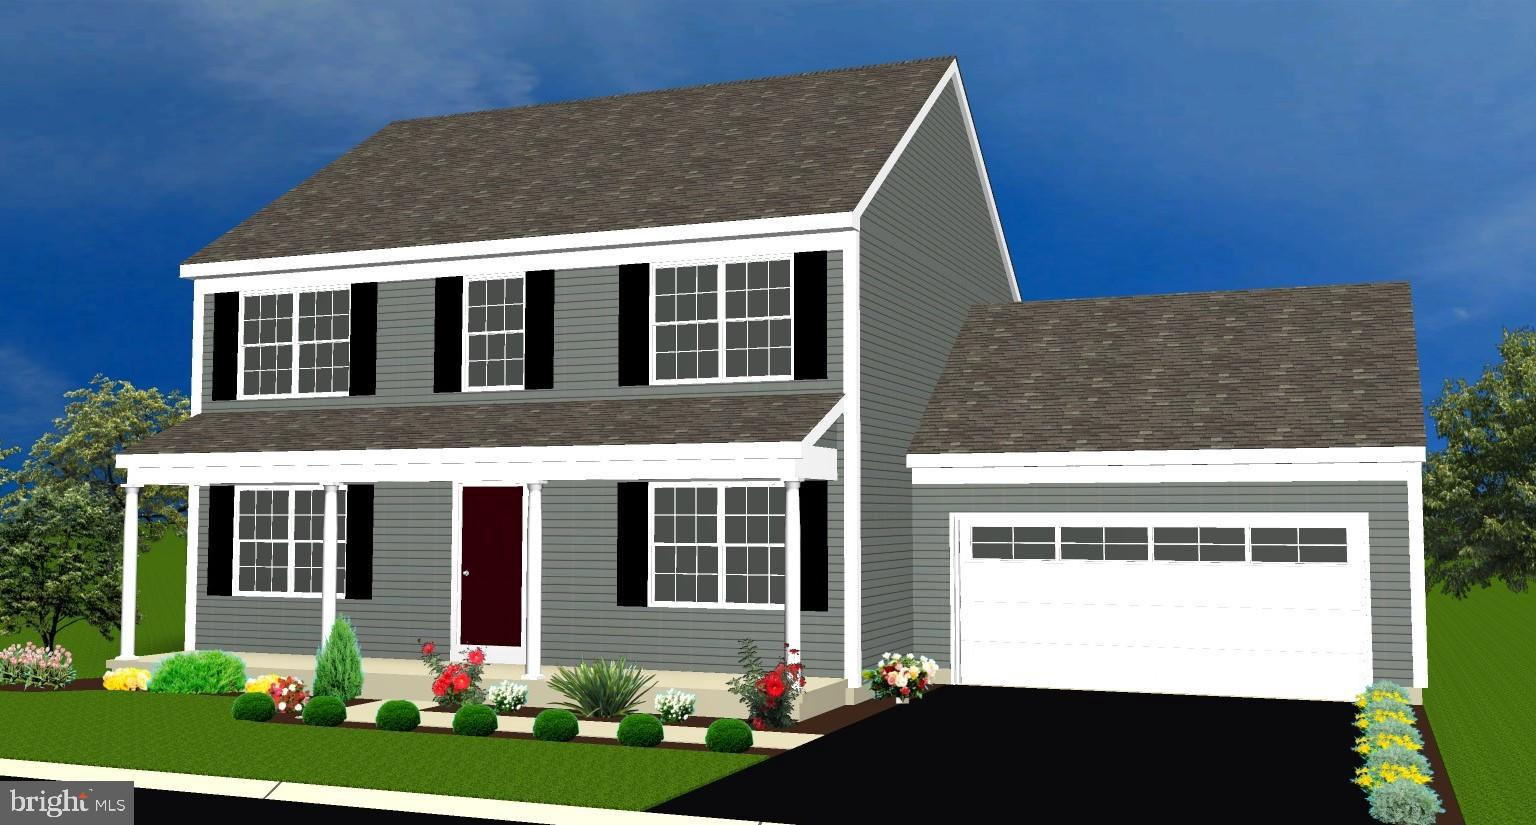 Full front porch provides a welcoming invitation.  Front door opens to an open floor plan.  Spacious combined dining room and living room.  Kitchen boasts an island with an overhang to enjoy those casual meals.  Storage is easy in the ample pantry.  Quiet moments can be savored in the private  first floor study.  This  two story three bedroom home has a convenient laundry, Master Bedroom Suite with private bath, walk in closet, plus two additional bedrooms and bath on the second floor.    Coming in from the two car garage the mudroom features a built in bench and pegs to keep the family organized.  Enjoy relaxing  on the rear deck.